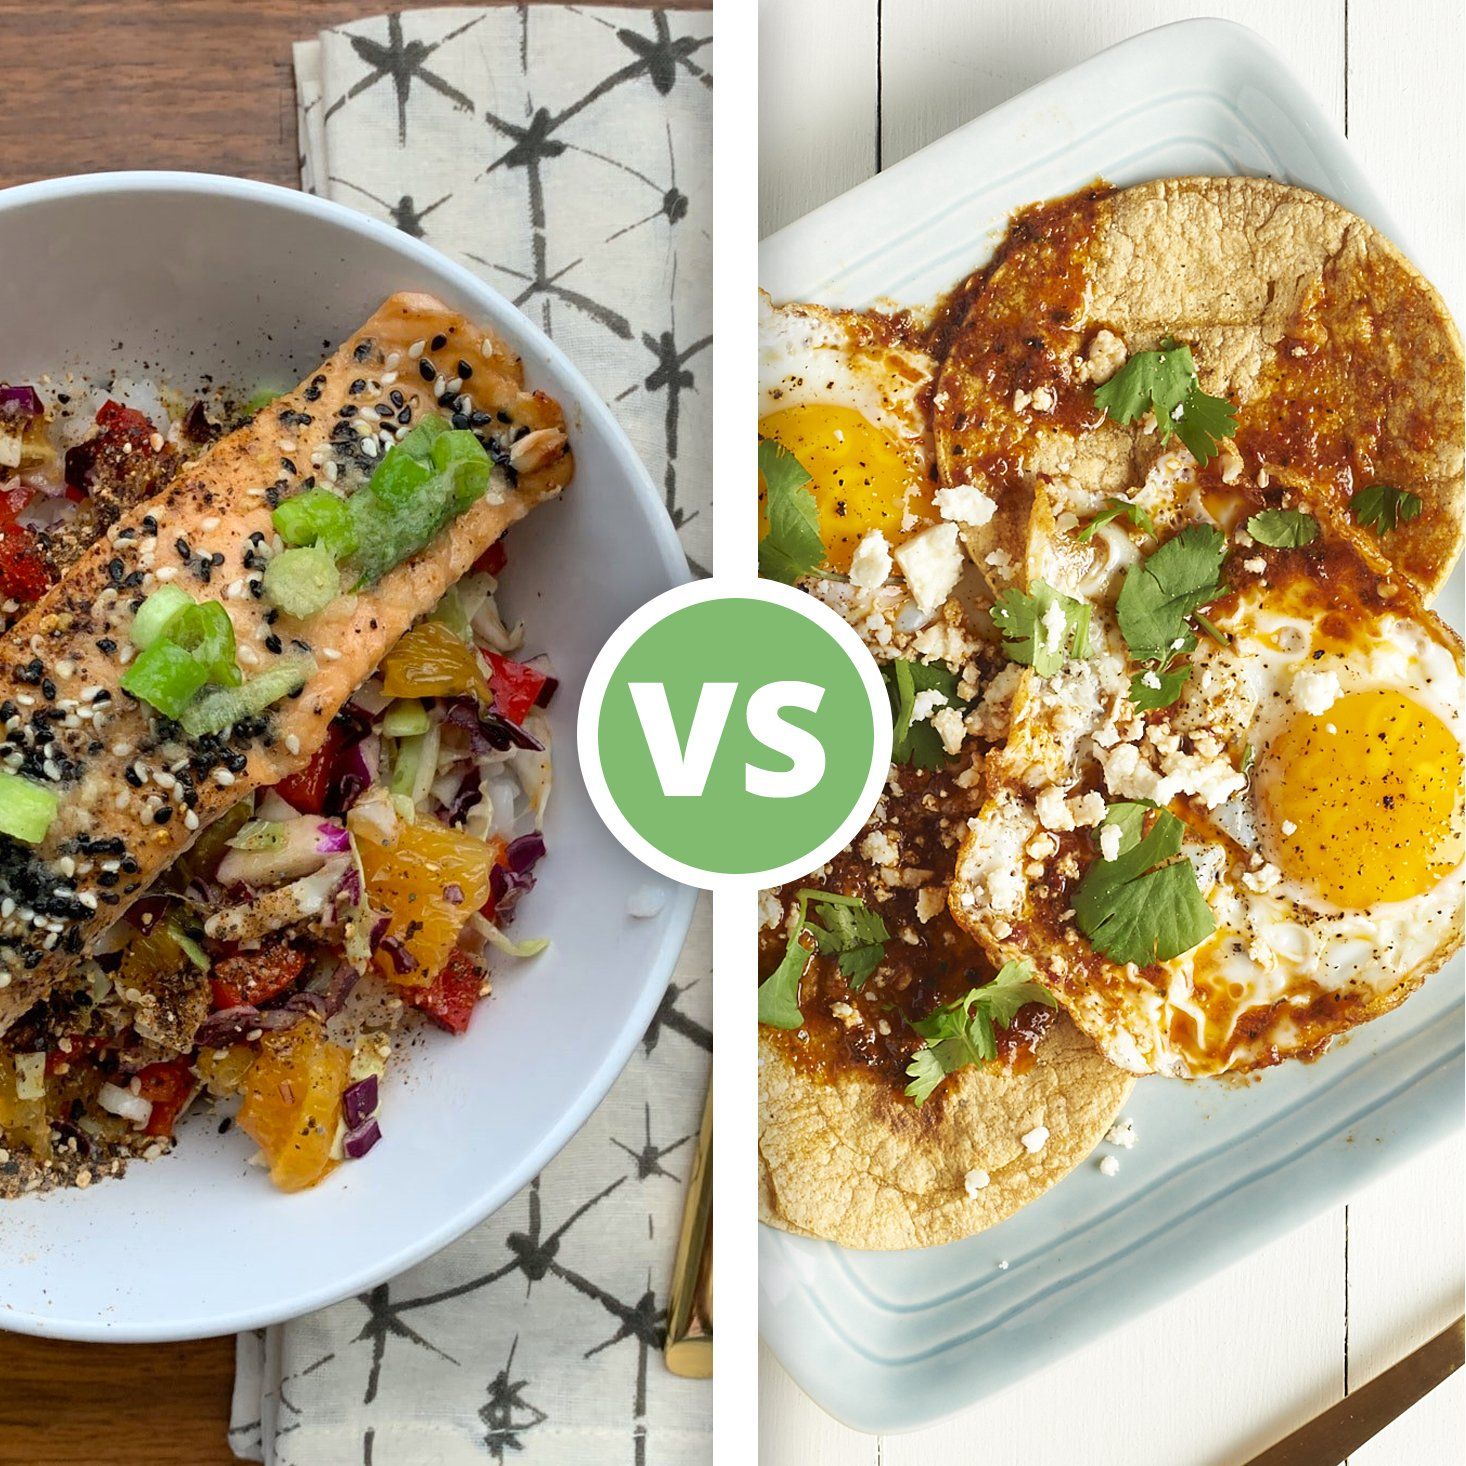 Green Chef vs. Sun Basket — What's the Real Difference?